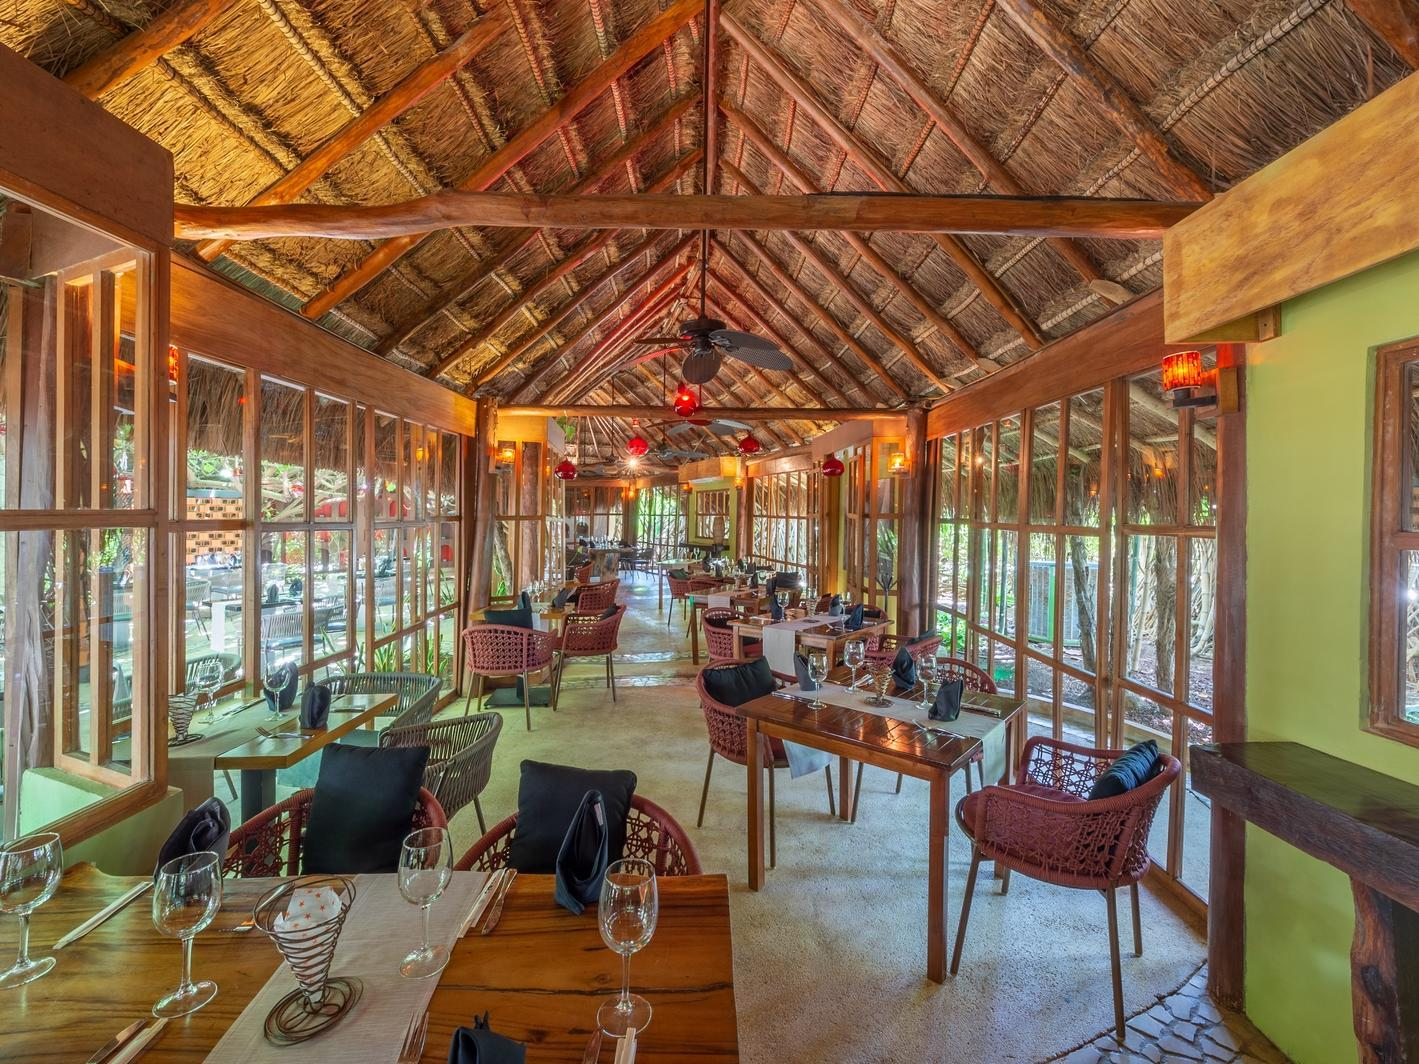 restaurant dining room with straw canopy roof